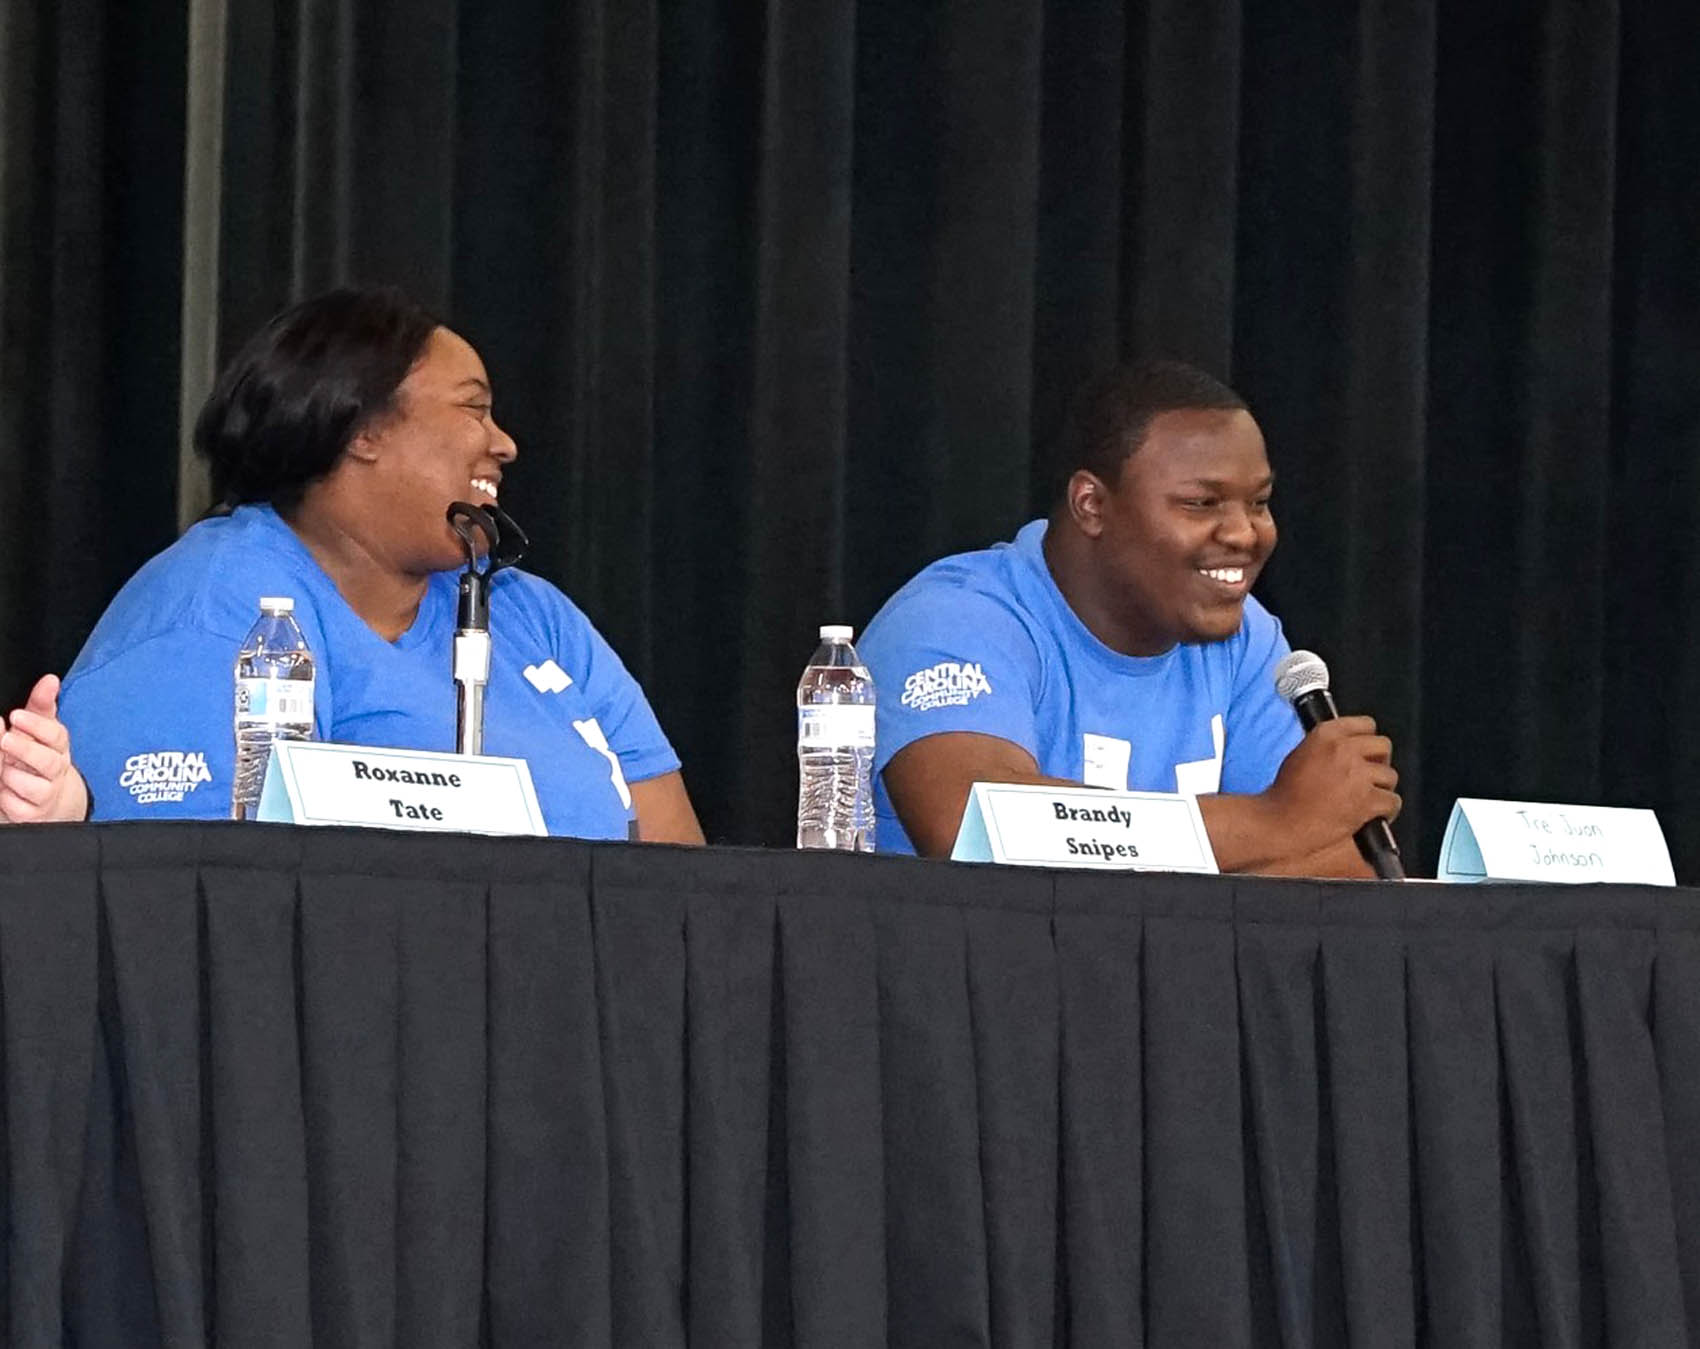 Click to enlarge,  Brandy Snipes and Tre' Juon Johnson from Central Carolina Community College participated in a student panel at the annual NC TRiO Student Initiatives Conference on March 2 at the Dennis A. Wicker Civic & Conference Center in Sanford.